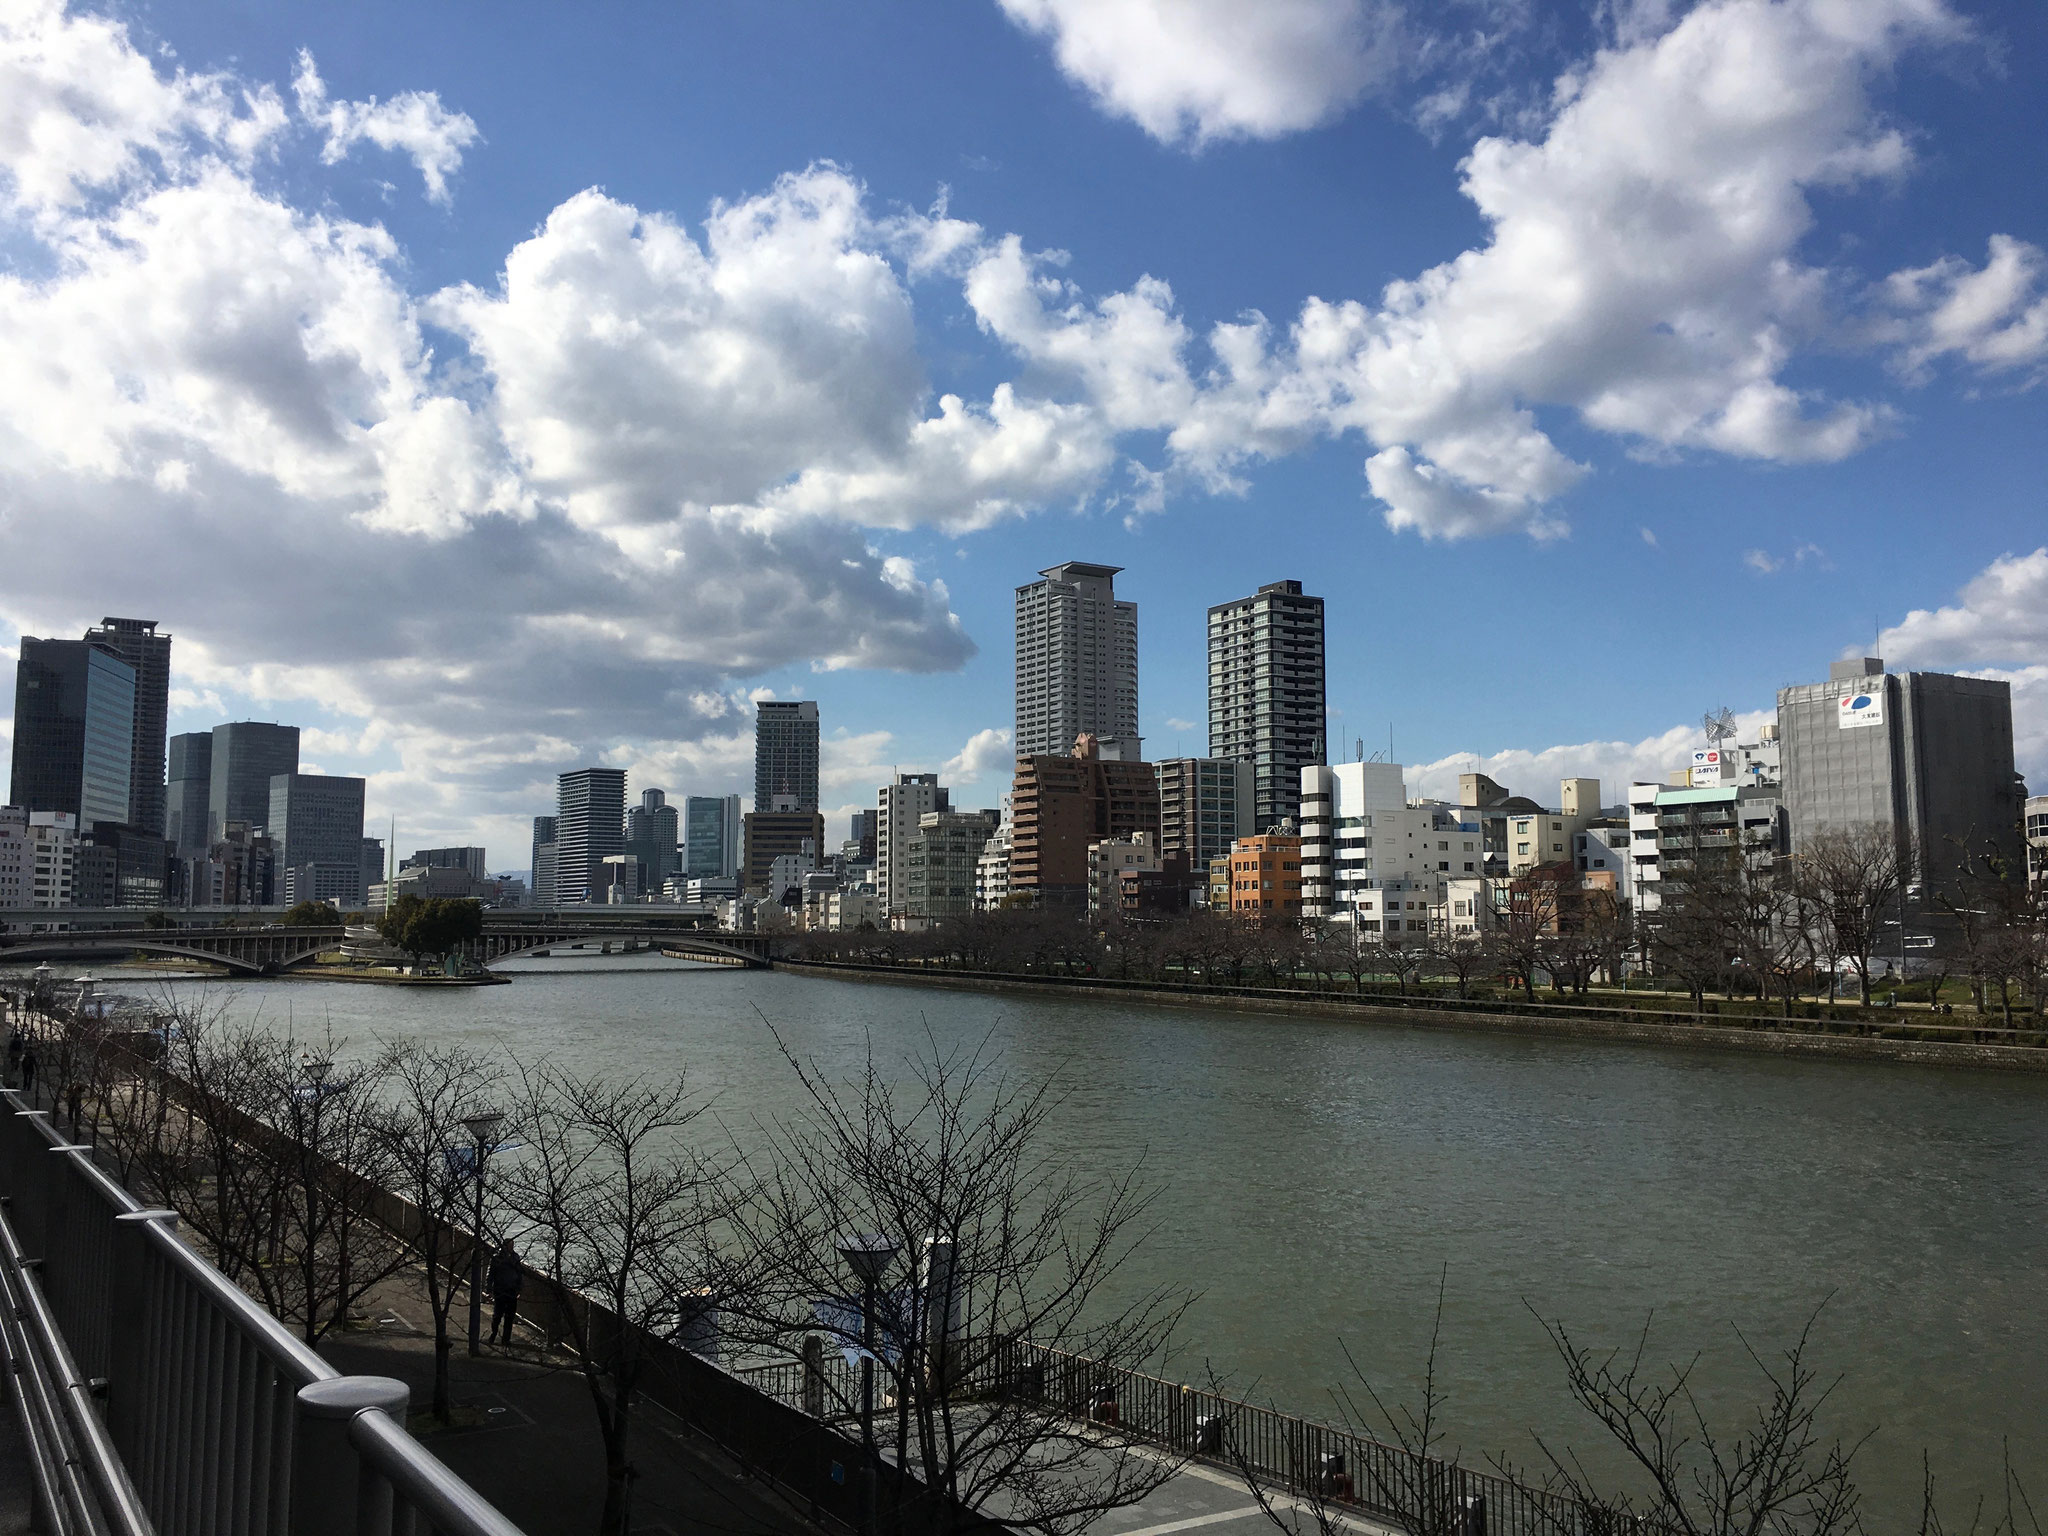 View of one of the two rivers in Osaka.